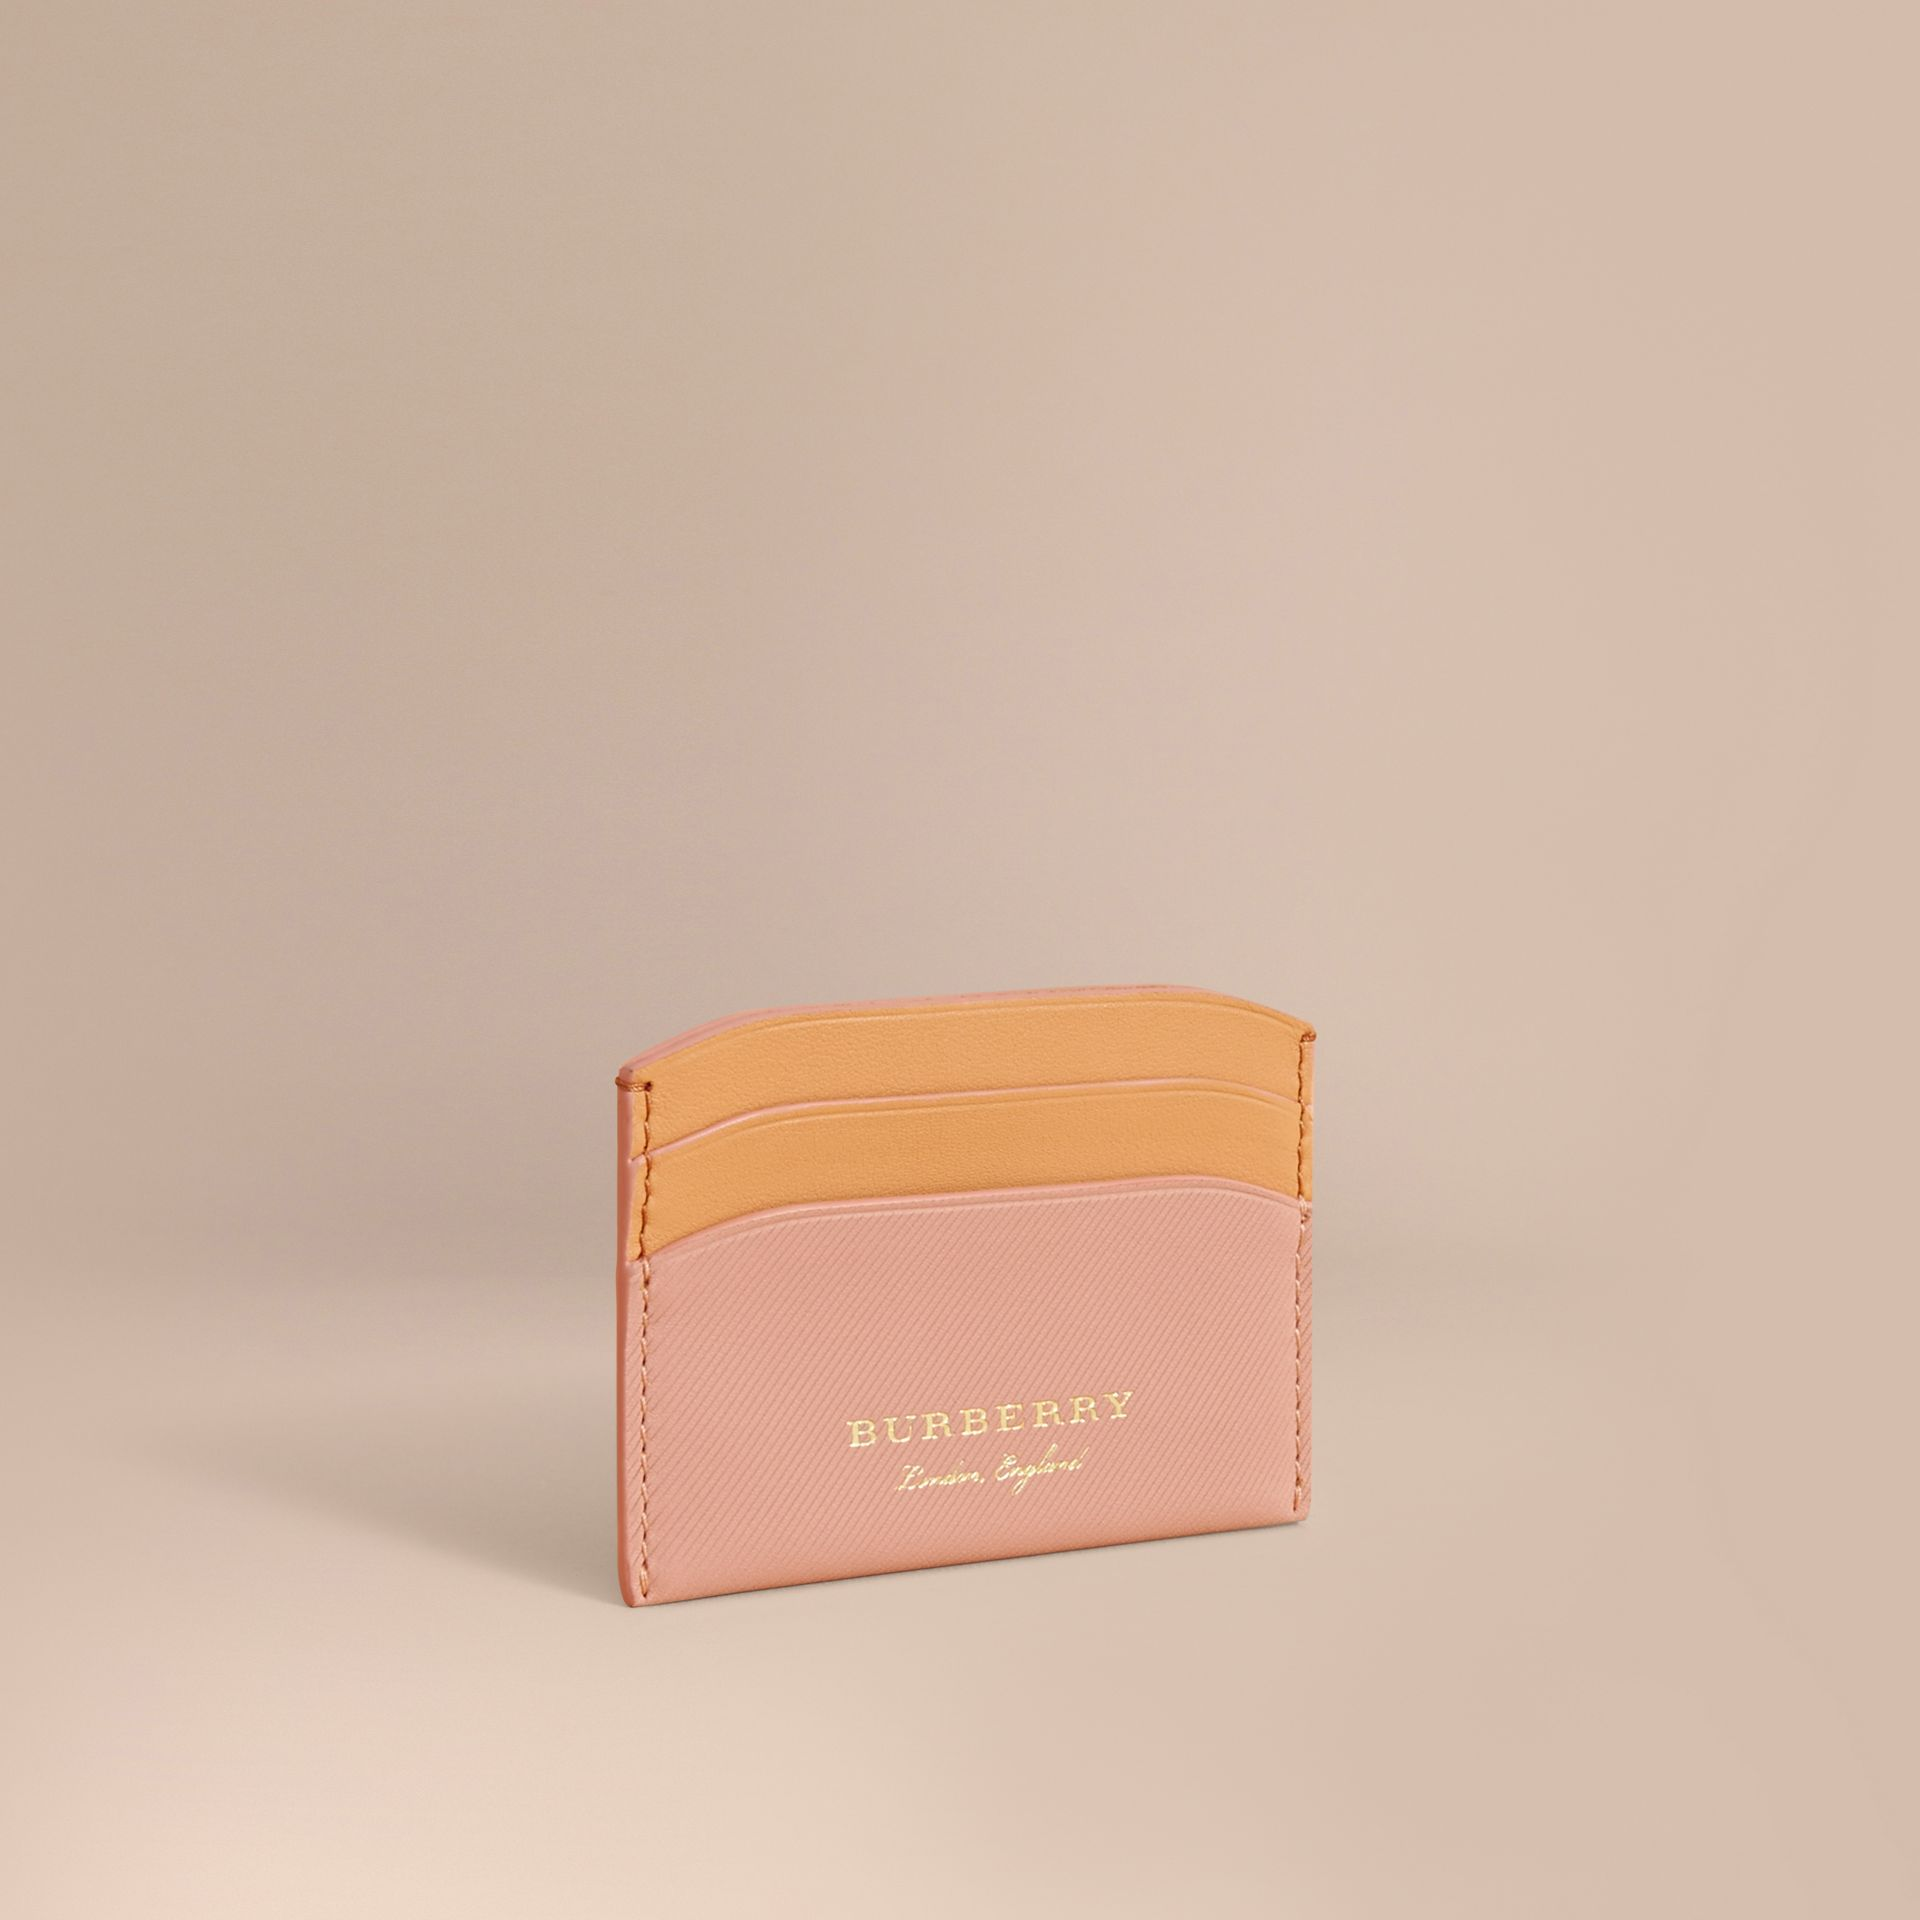 Two-tone Trench Leather Card Case in Ash Rose/pl Clemn - Women | Burberry - gallery image 1